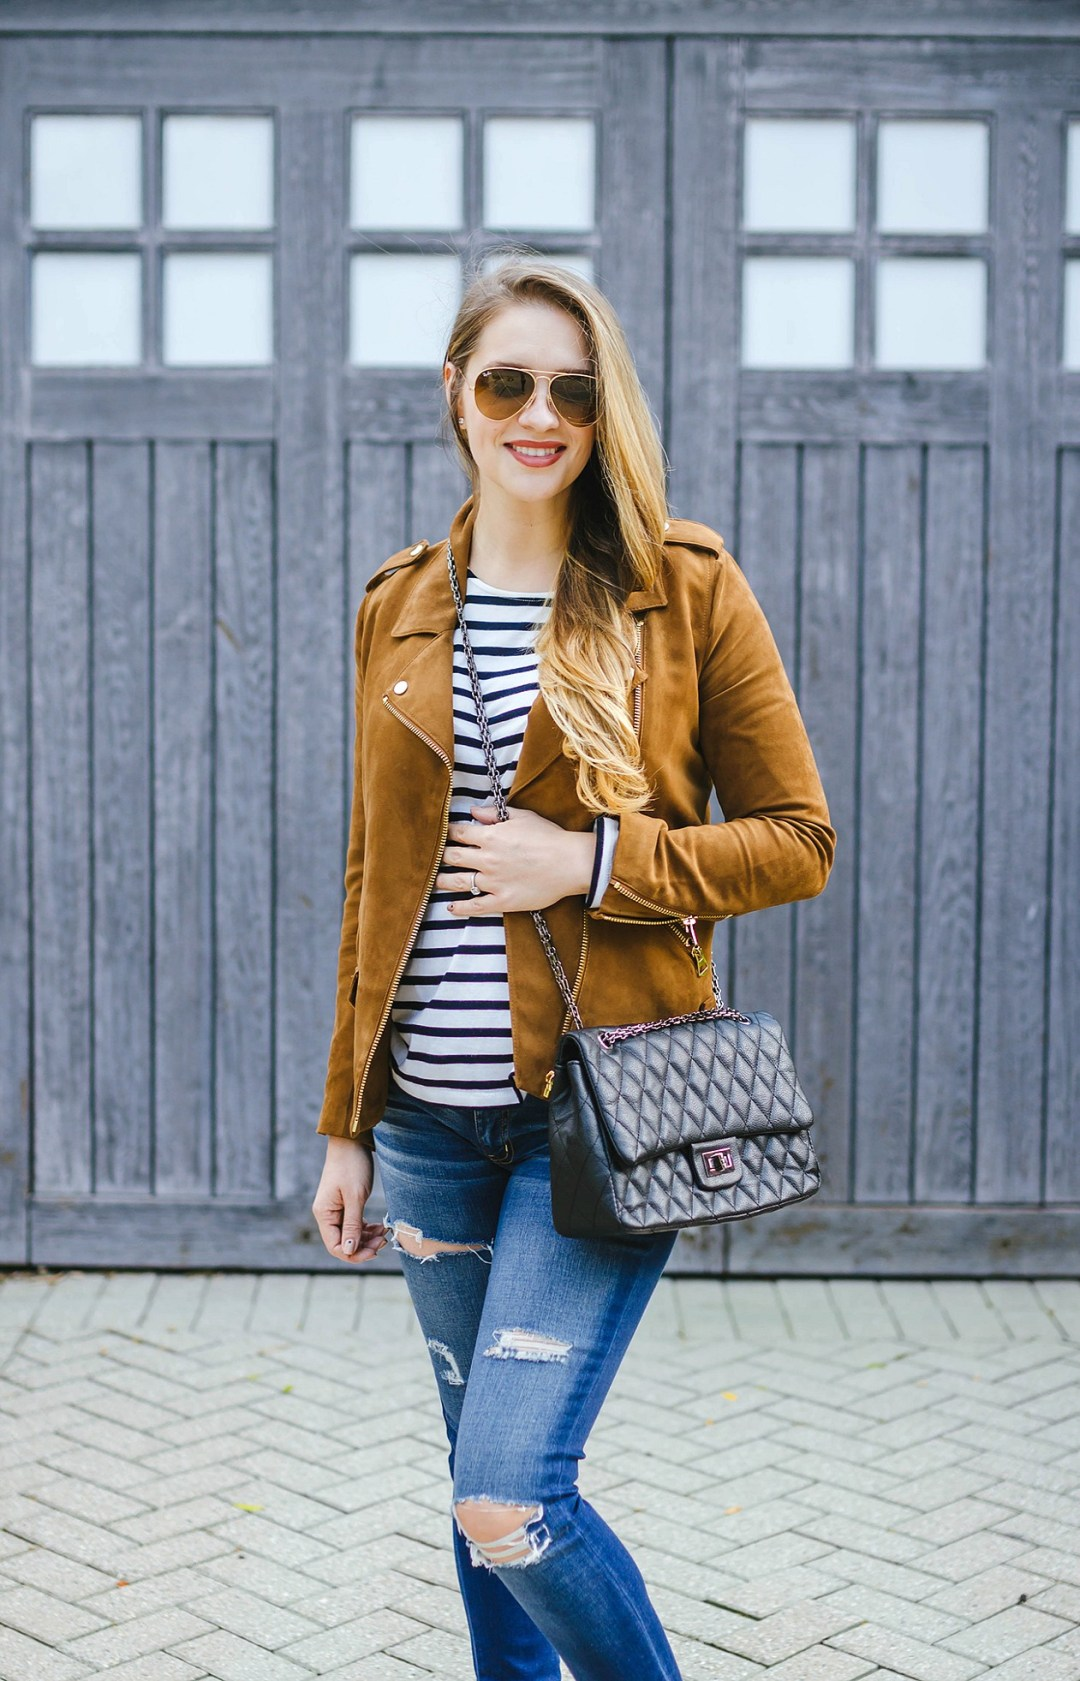 maternity-style-vans-sneakers-rose-city-style-guide-canadian-blogger-fall-style-fashion-lifestyle-4